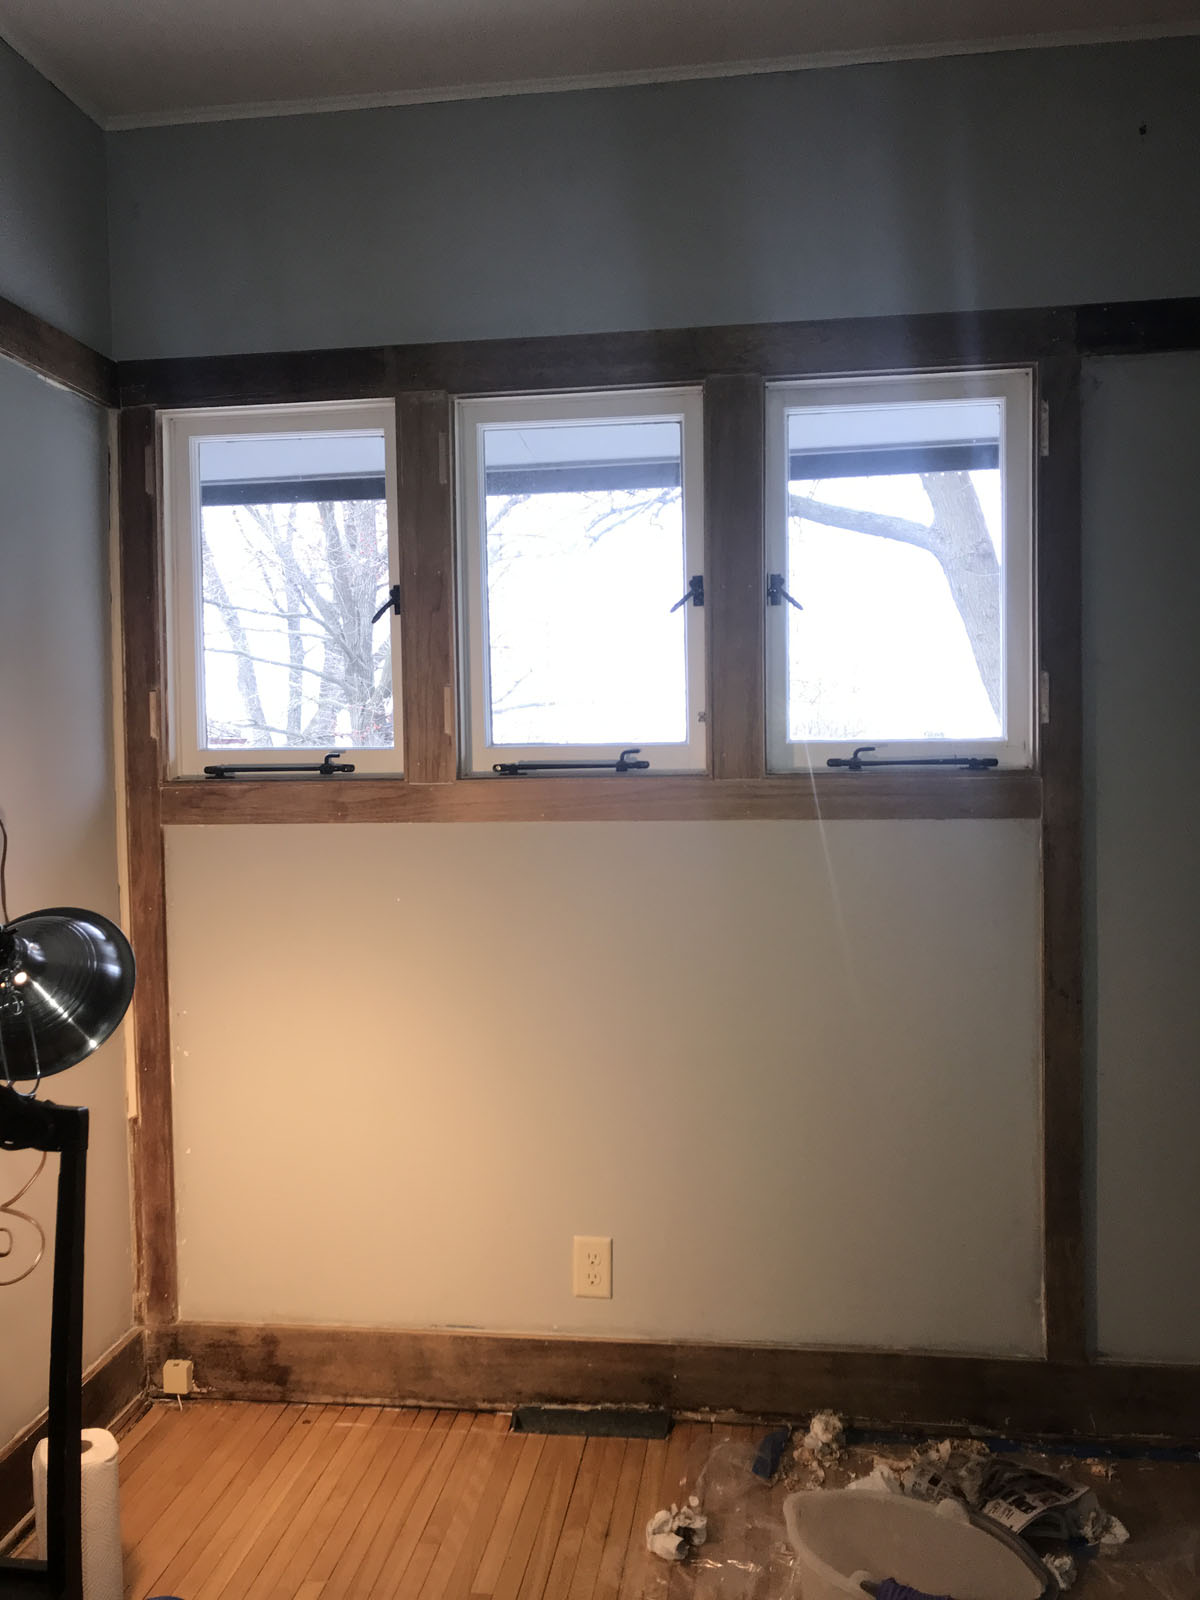 Stripping paint in an old home